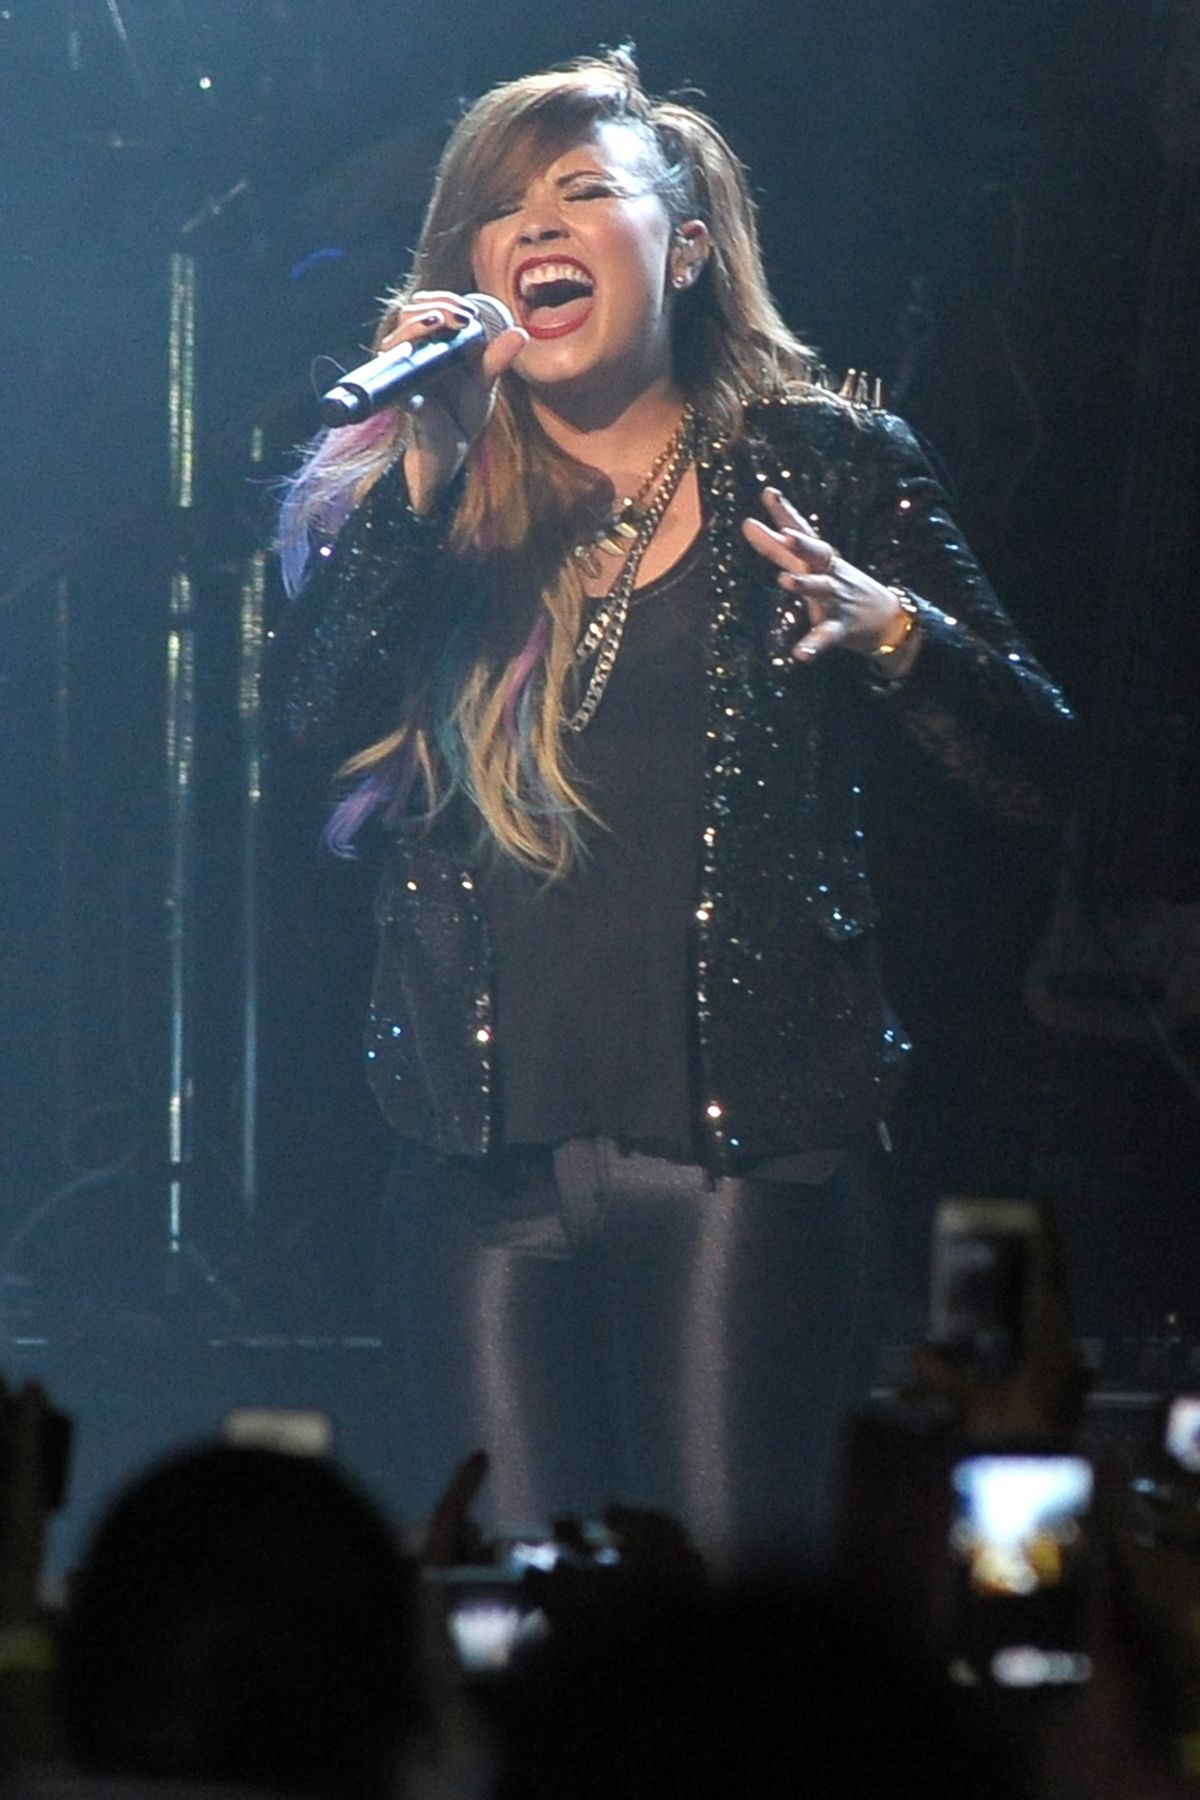 DEMI LOVATO Performs at Neon Lights Tour in Sao Paulo